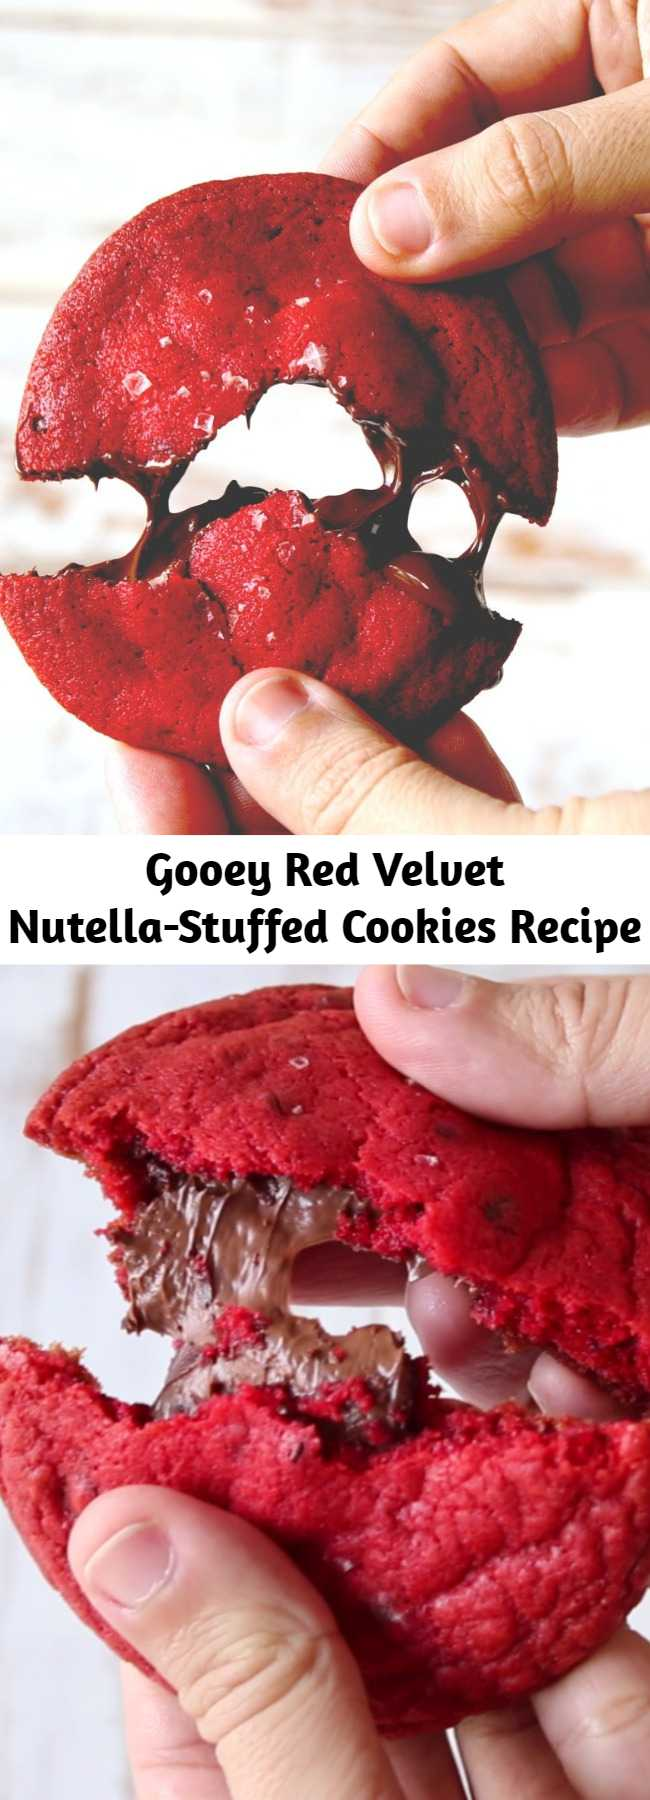 Gooey Red Velvet Nutella-Stuffed Cookies Recipe - Red velvet cookies are even better when they're stuffed with warm melted Nutella. Oh baby! You won't be able to stop at one. So rich and gooey, they speak for themselves.